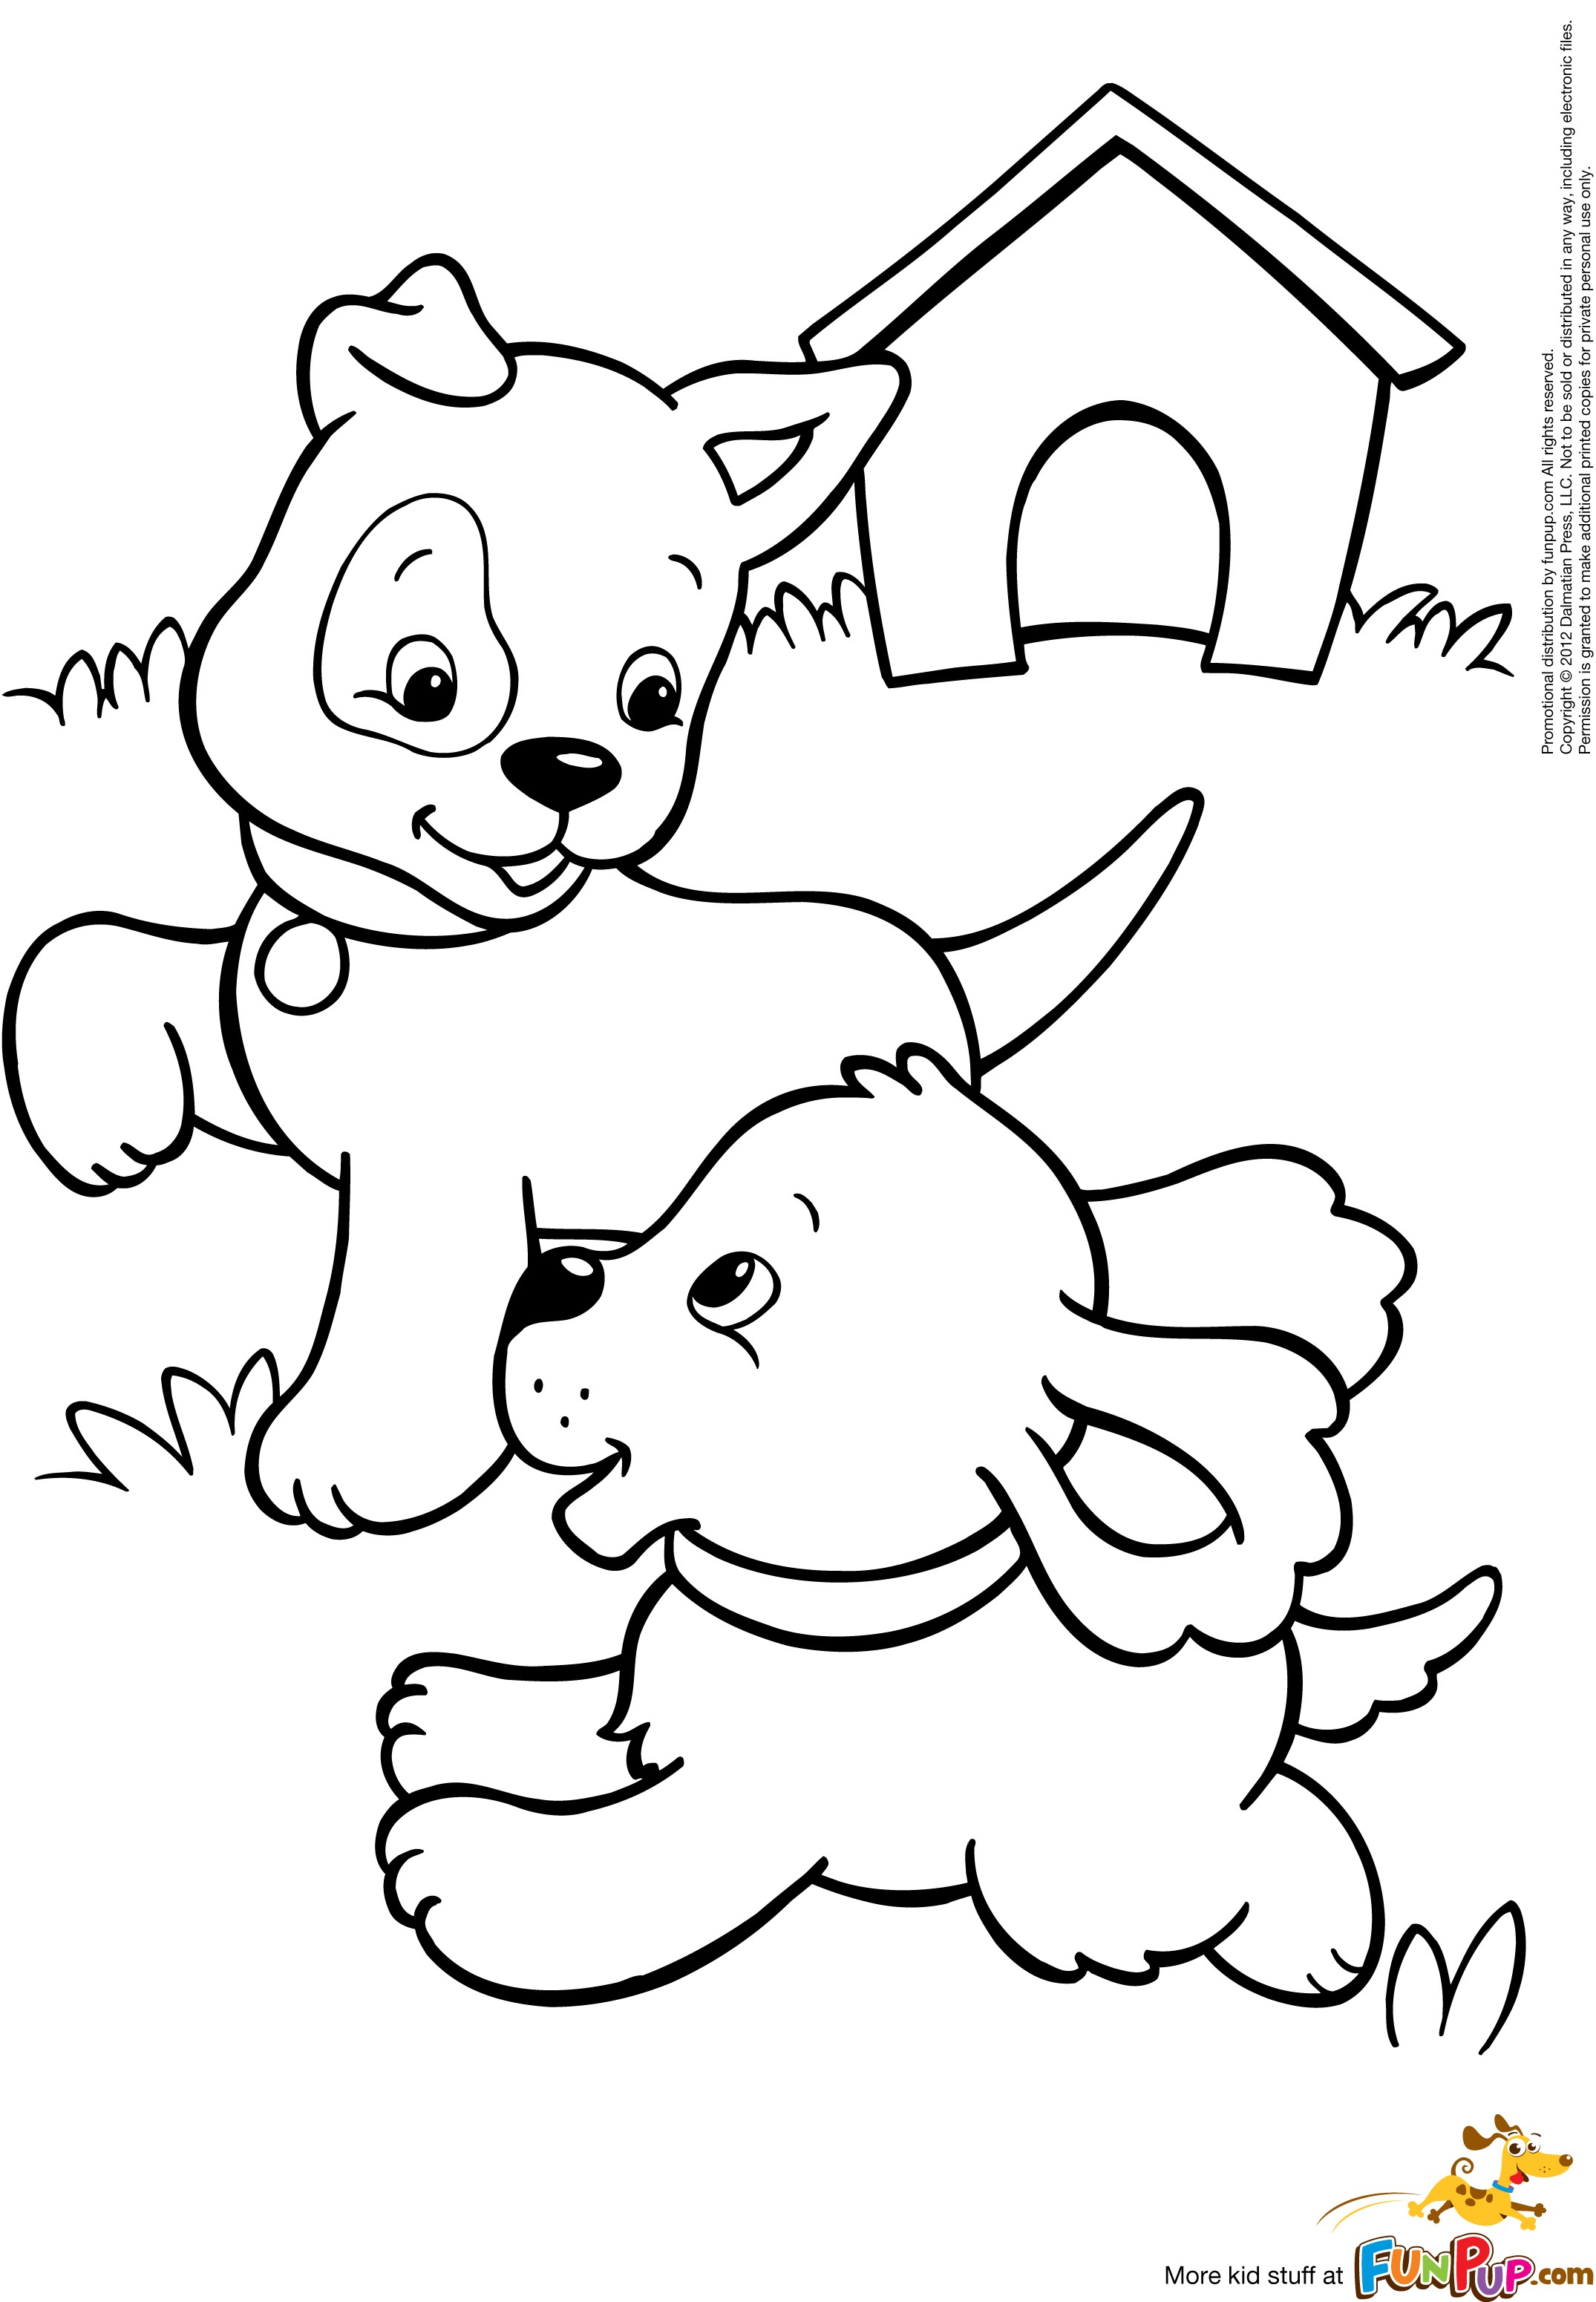 a coloring page of a dog dog breed coloring pages a page a dog coloring of